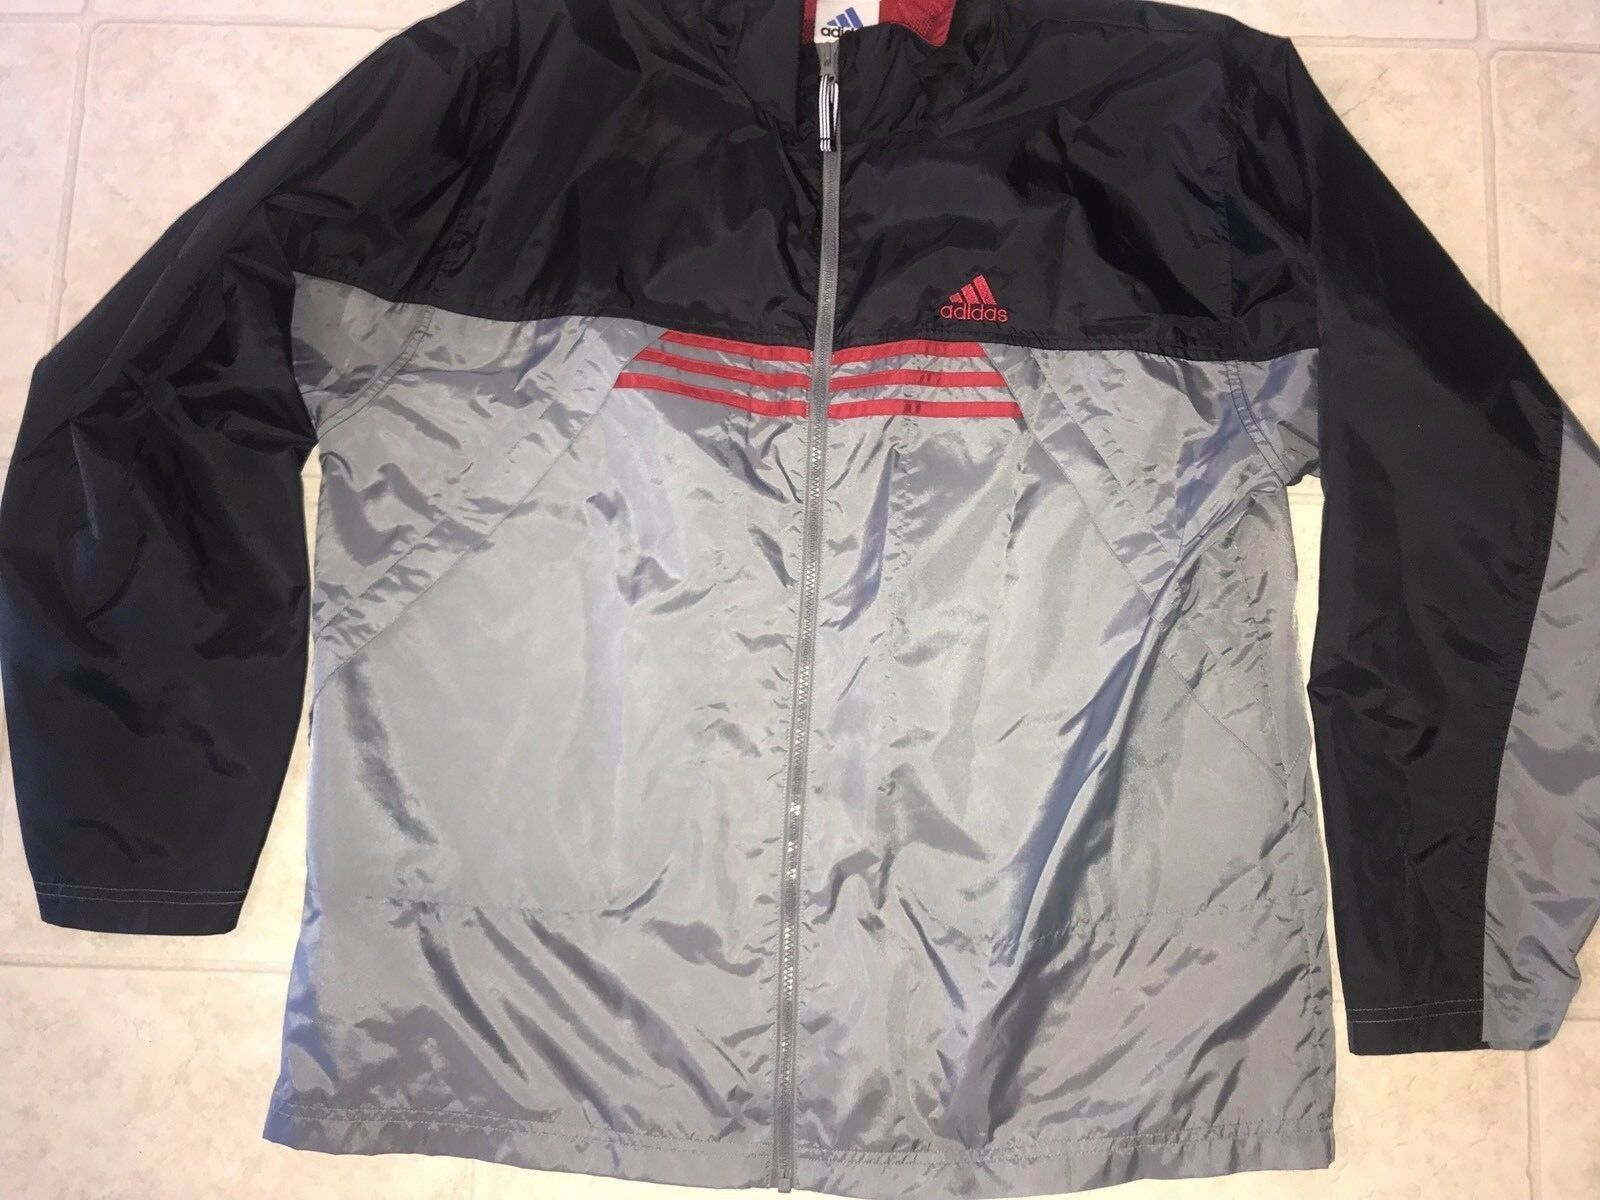 Primary image for Adidas ~ Men's Black Gray Red 3-Striped Track Jacket Light Weight Mesh Lined ~ L